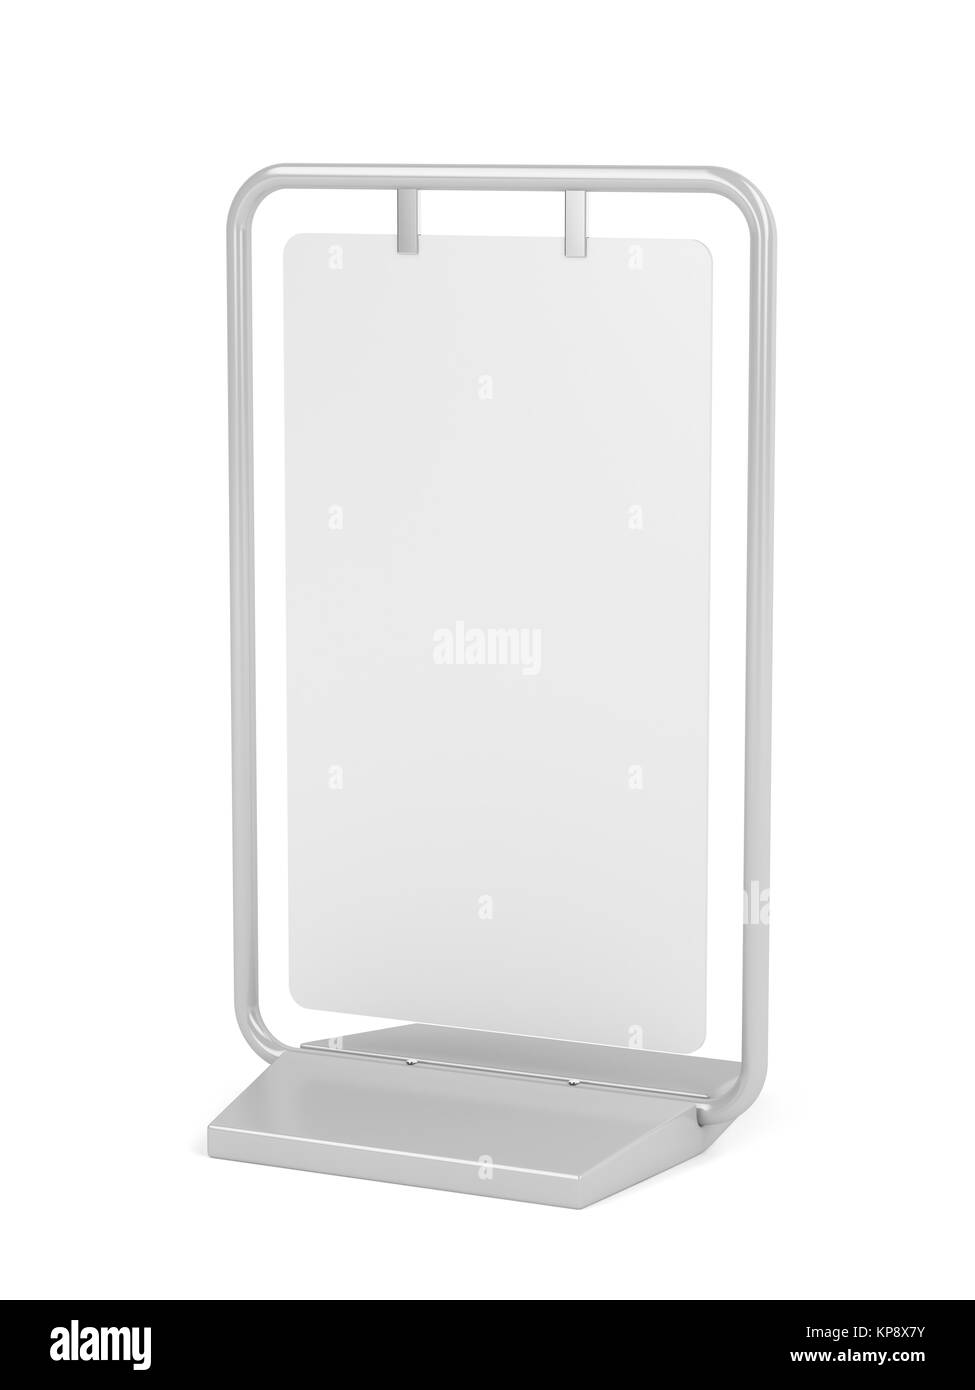 Advertising stand - Stock Image